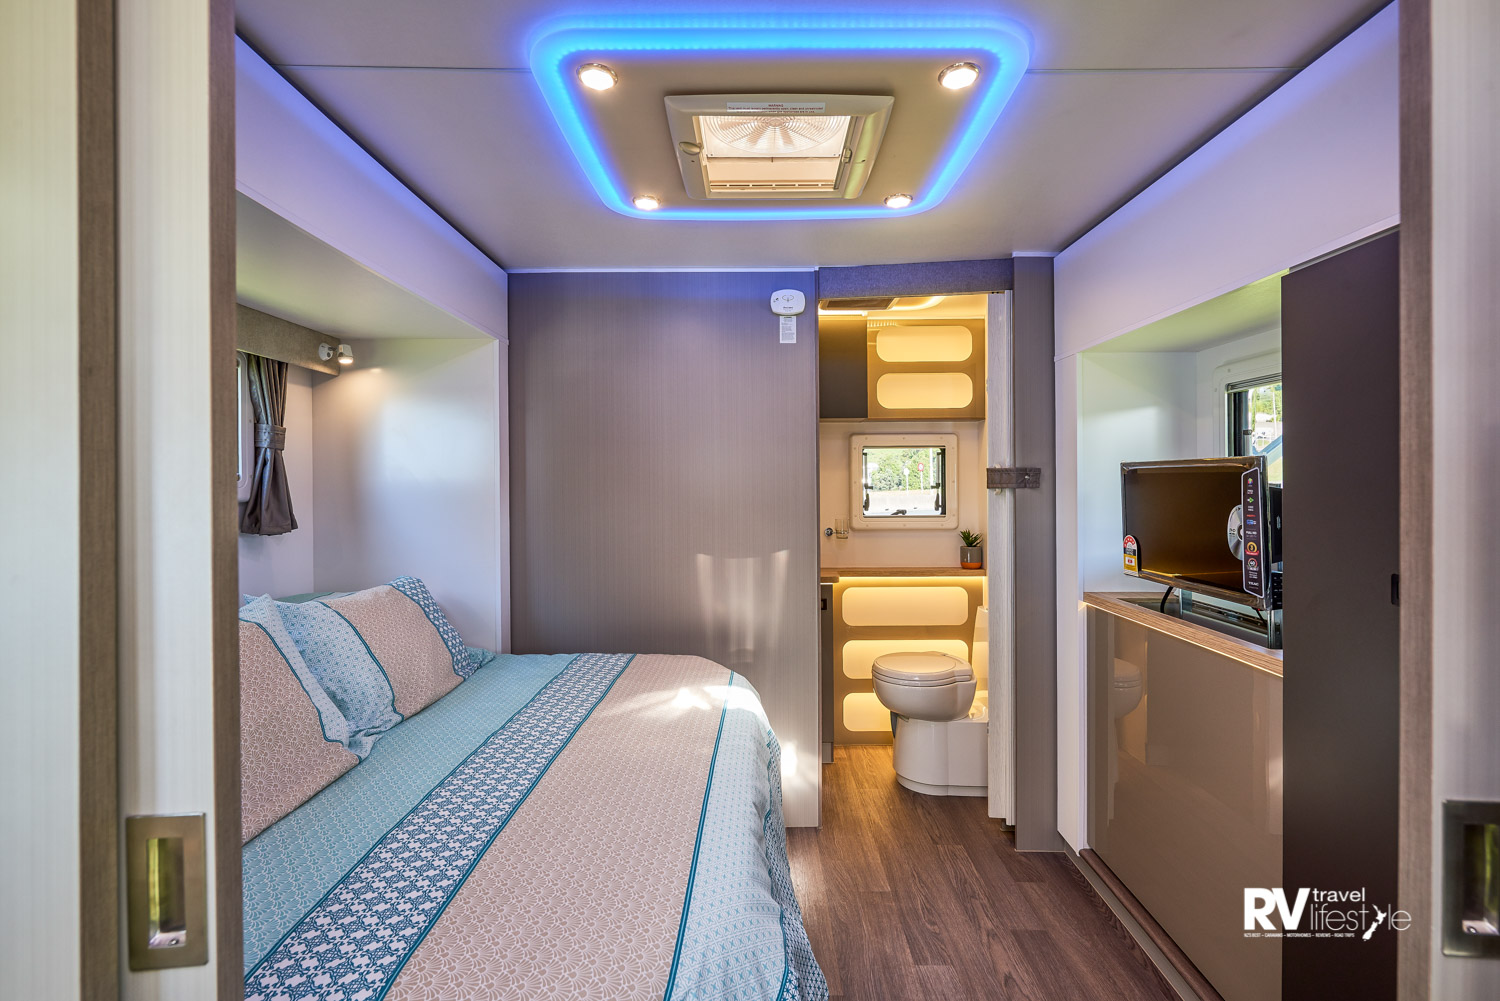 The bed in the twin slide-out bedroom shown in day mode